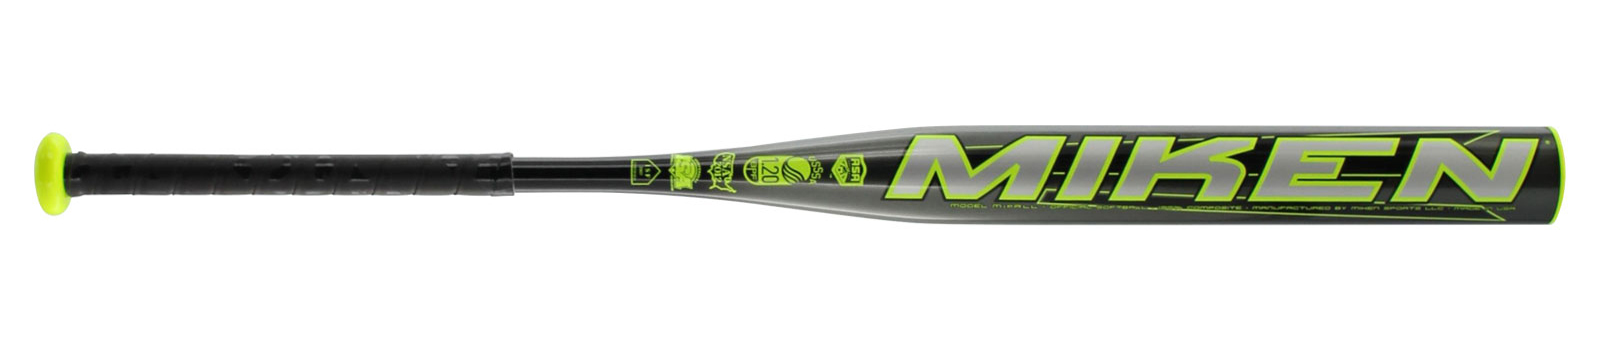 Miken Rev Ex Slow Pitch Softball Bat